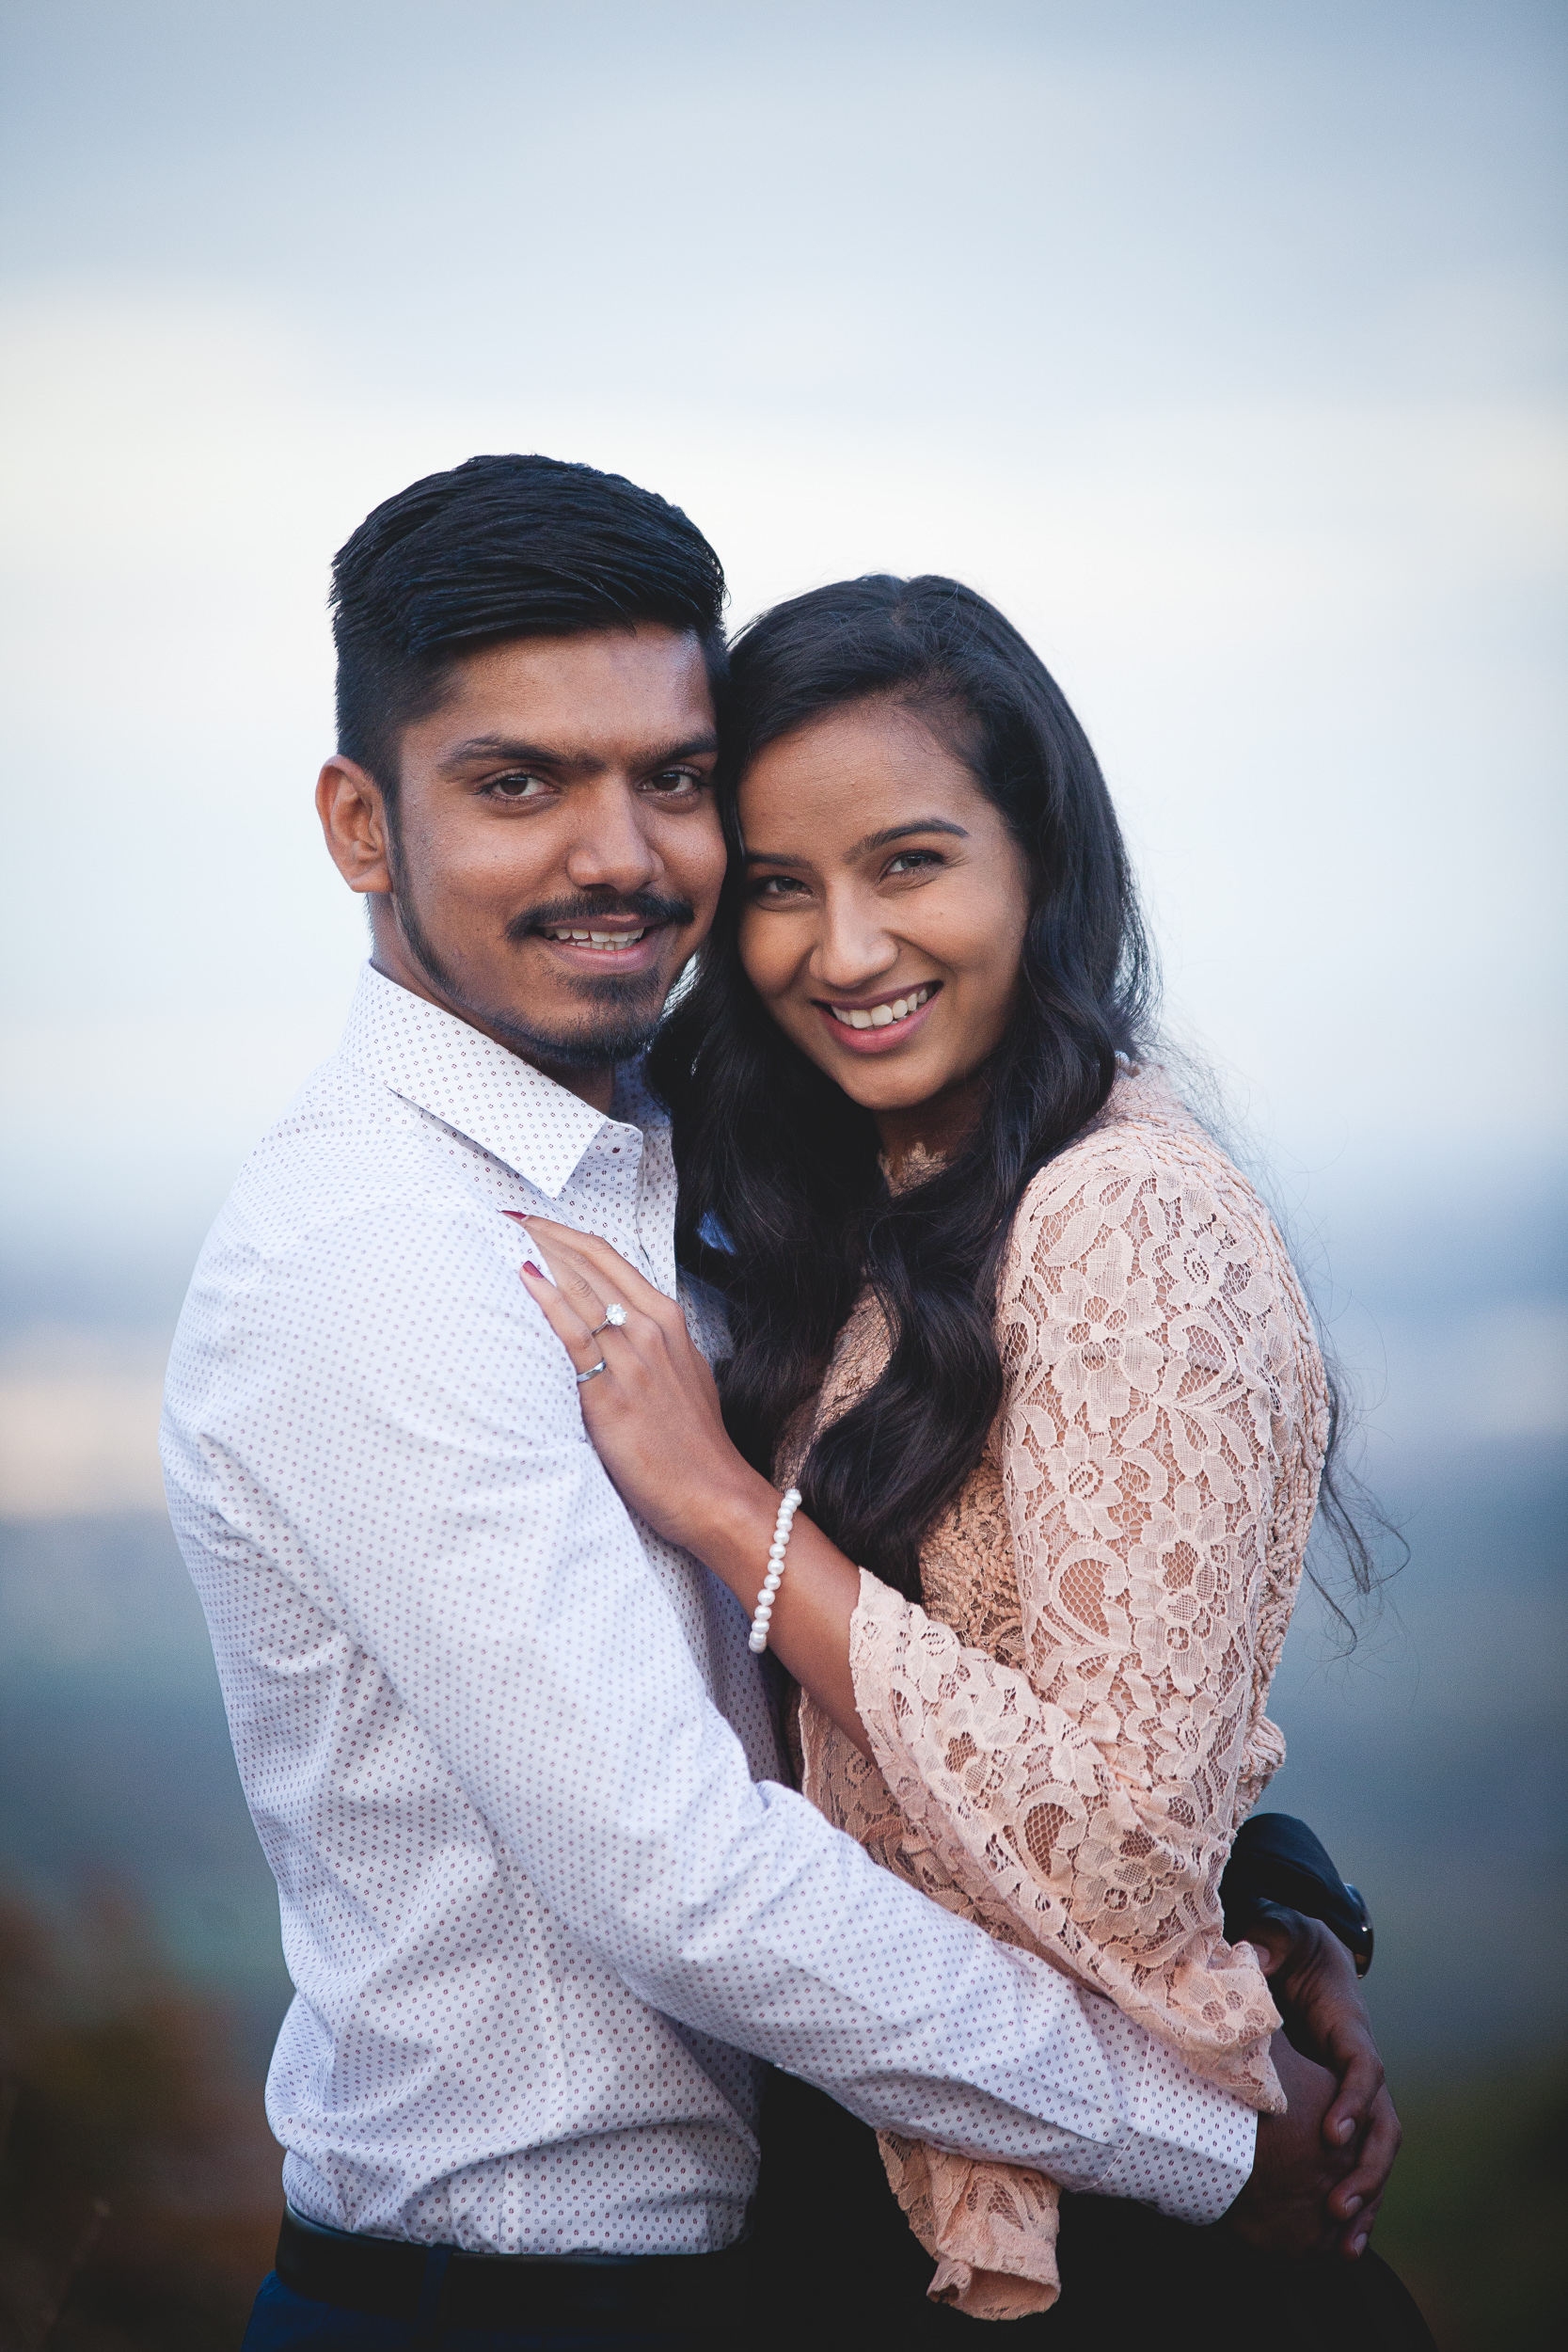 Image 1 of Krunal and Nirali